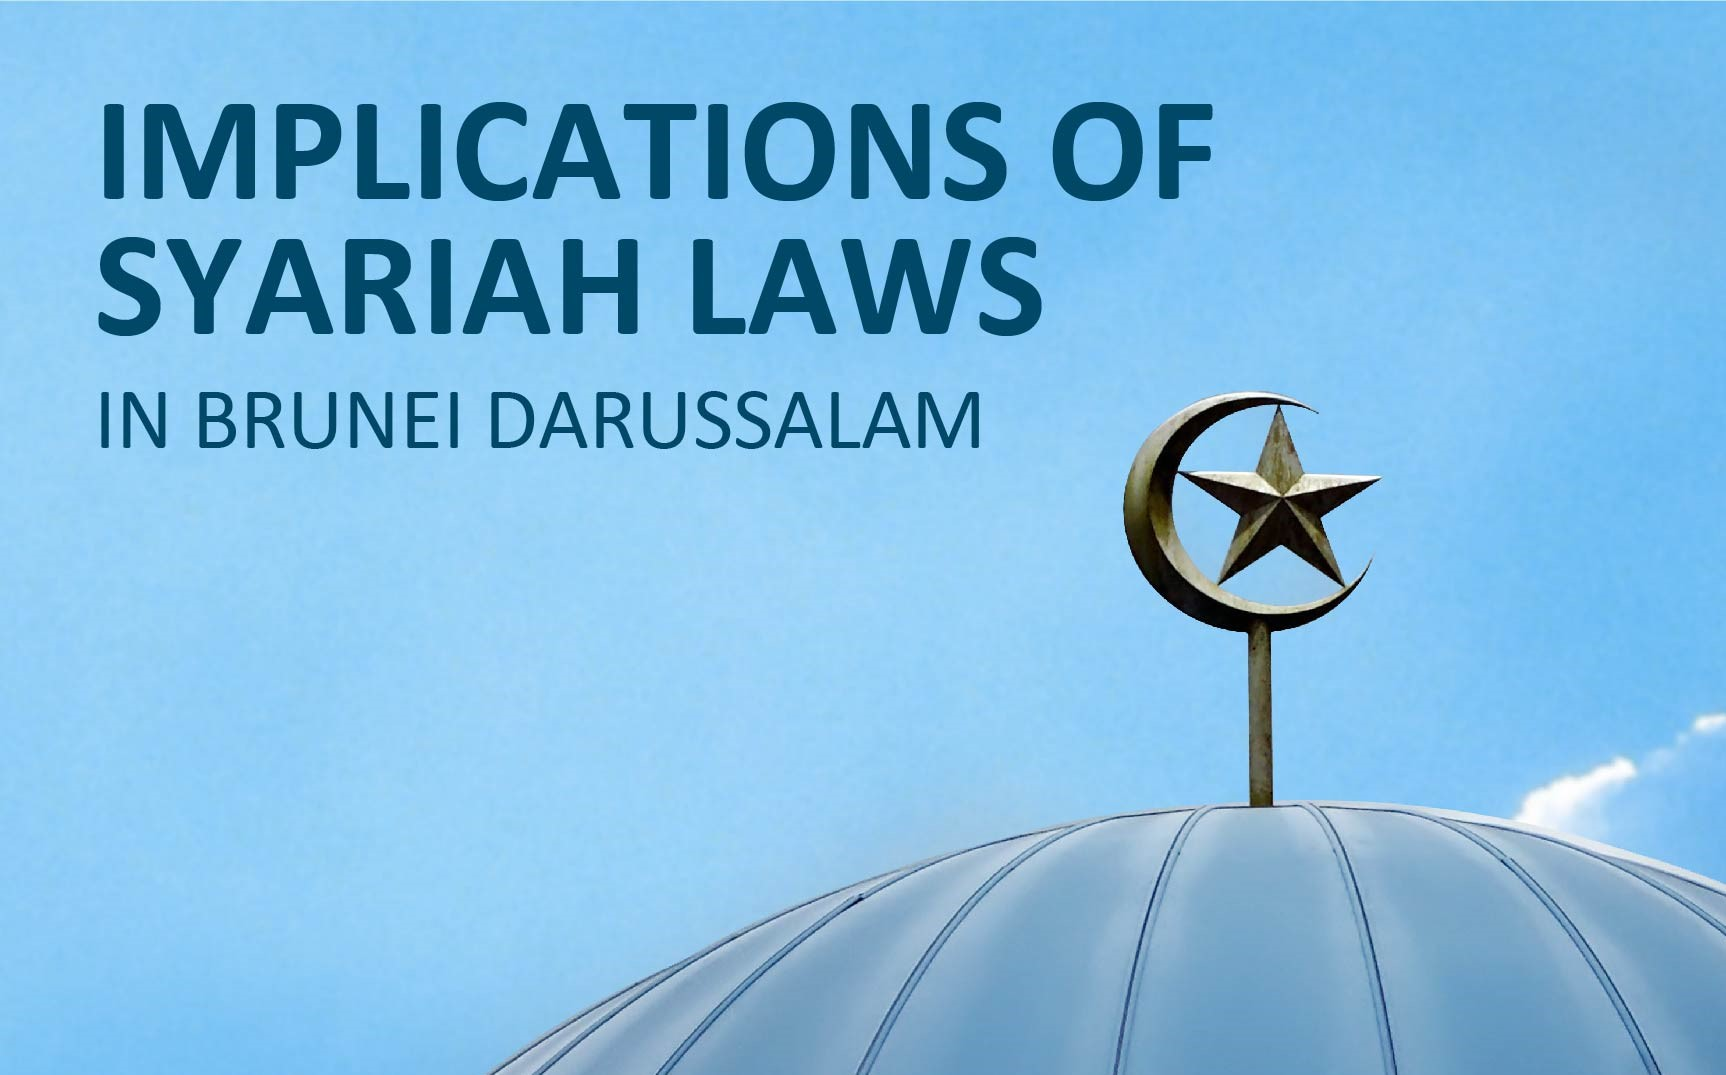 Implication of syariah laws